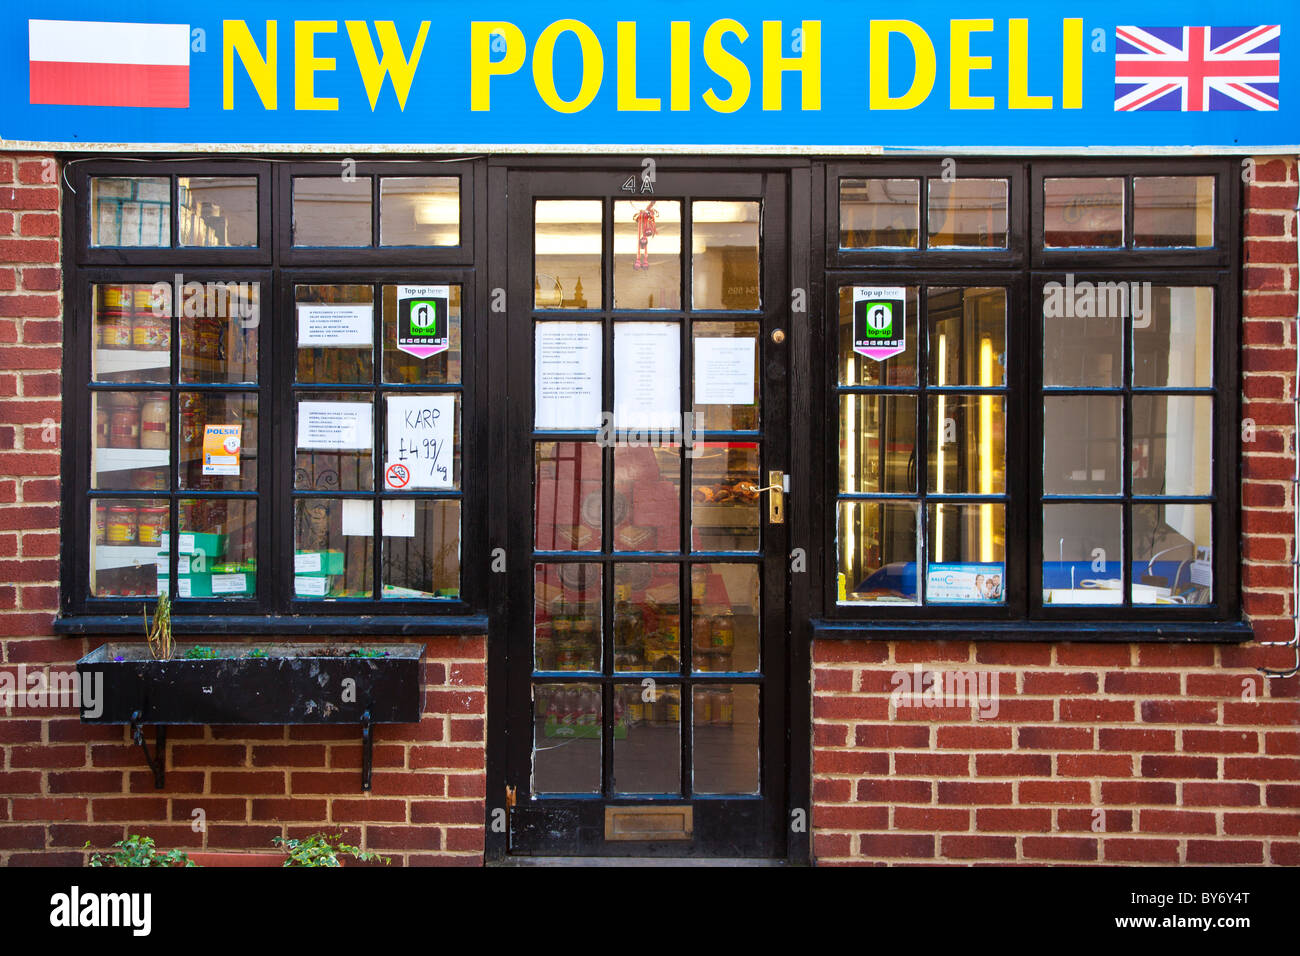 A typical Polish delicatessen or grocery shop in the English provincial town of Trowbridge, Wiltshire,England, UK - Stock Image